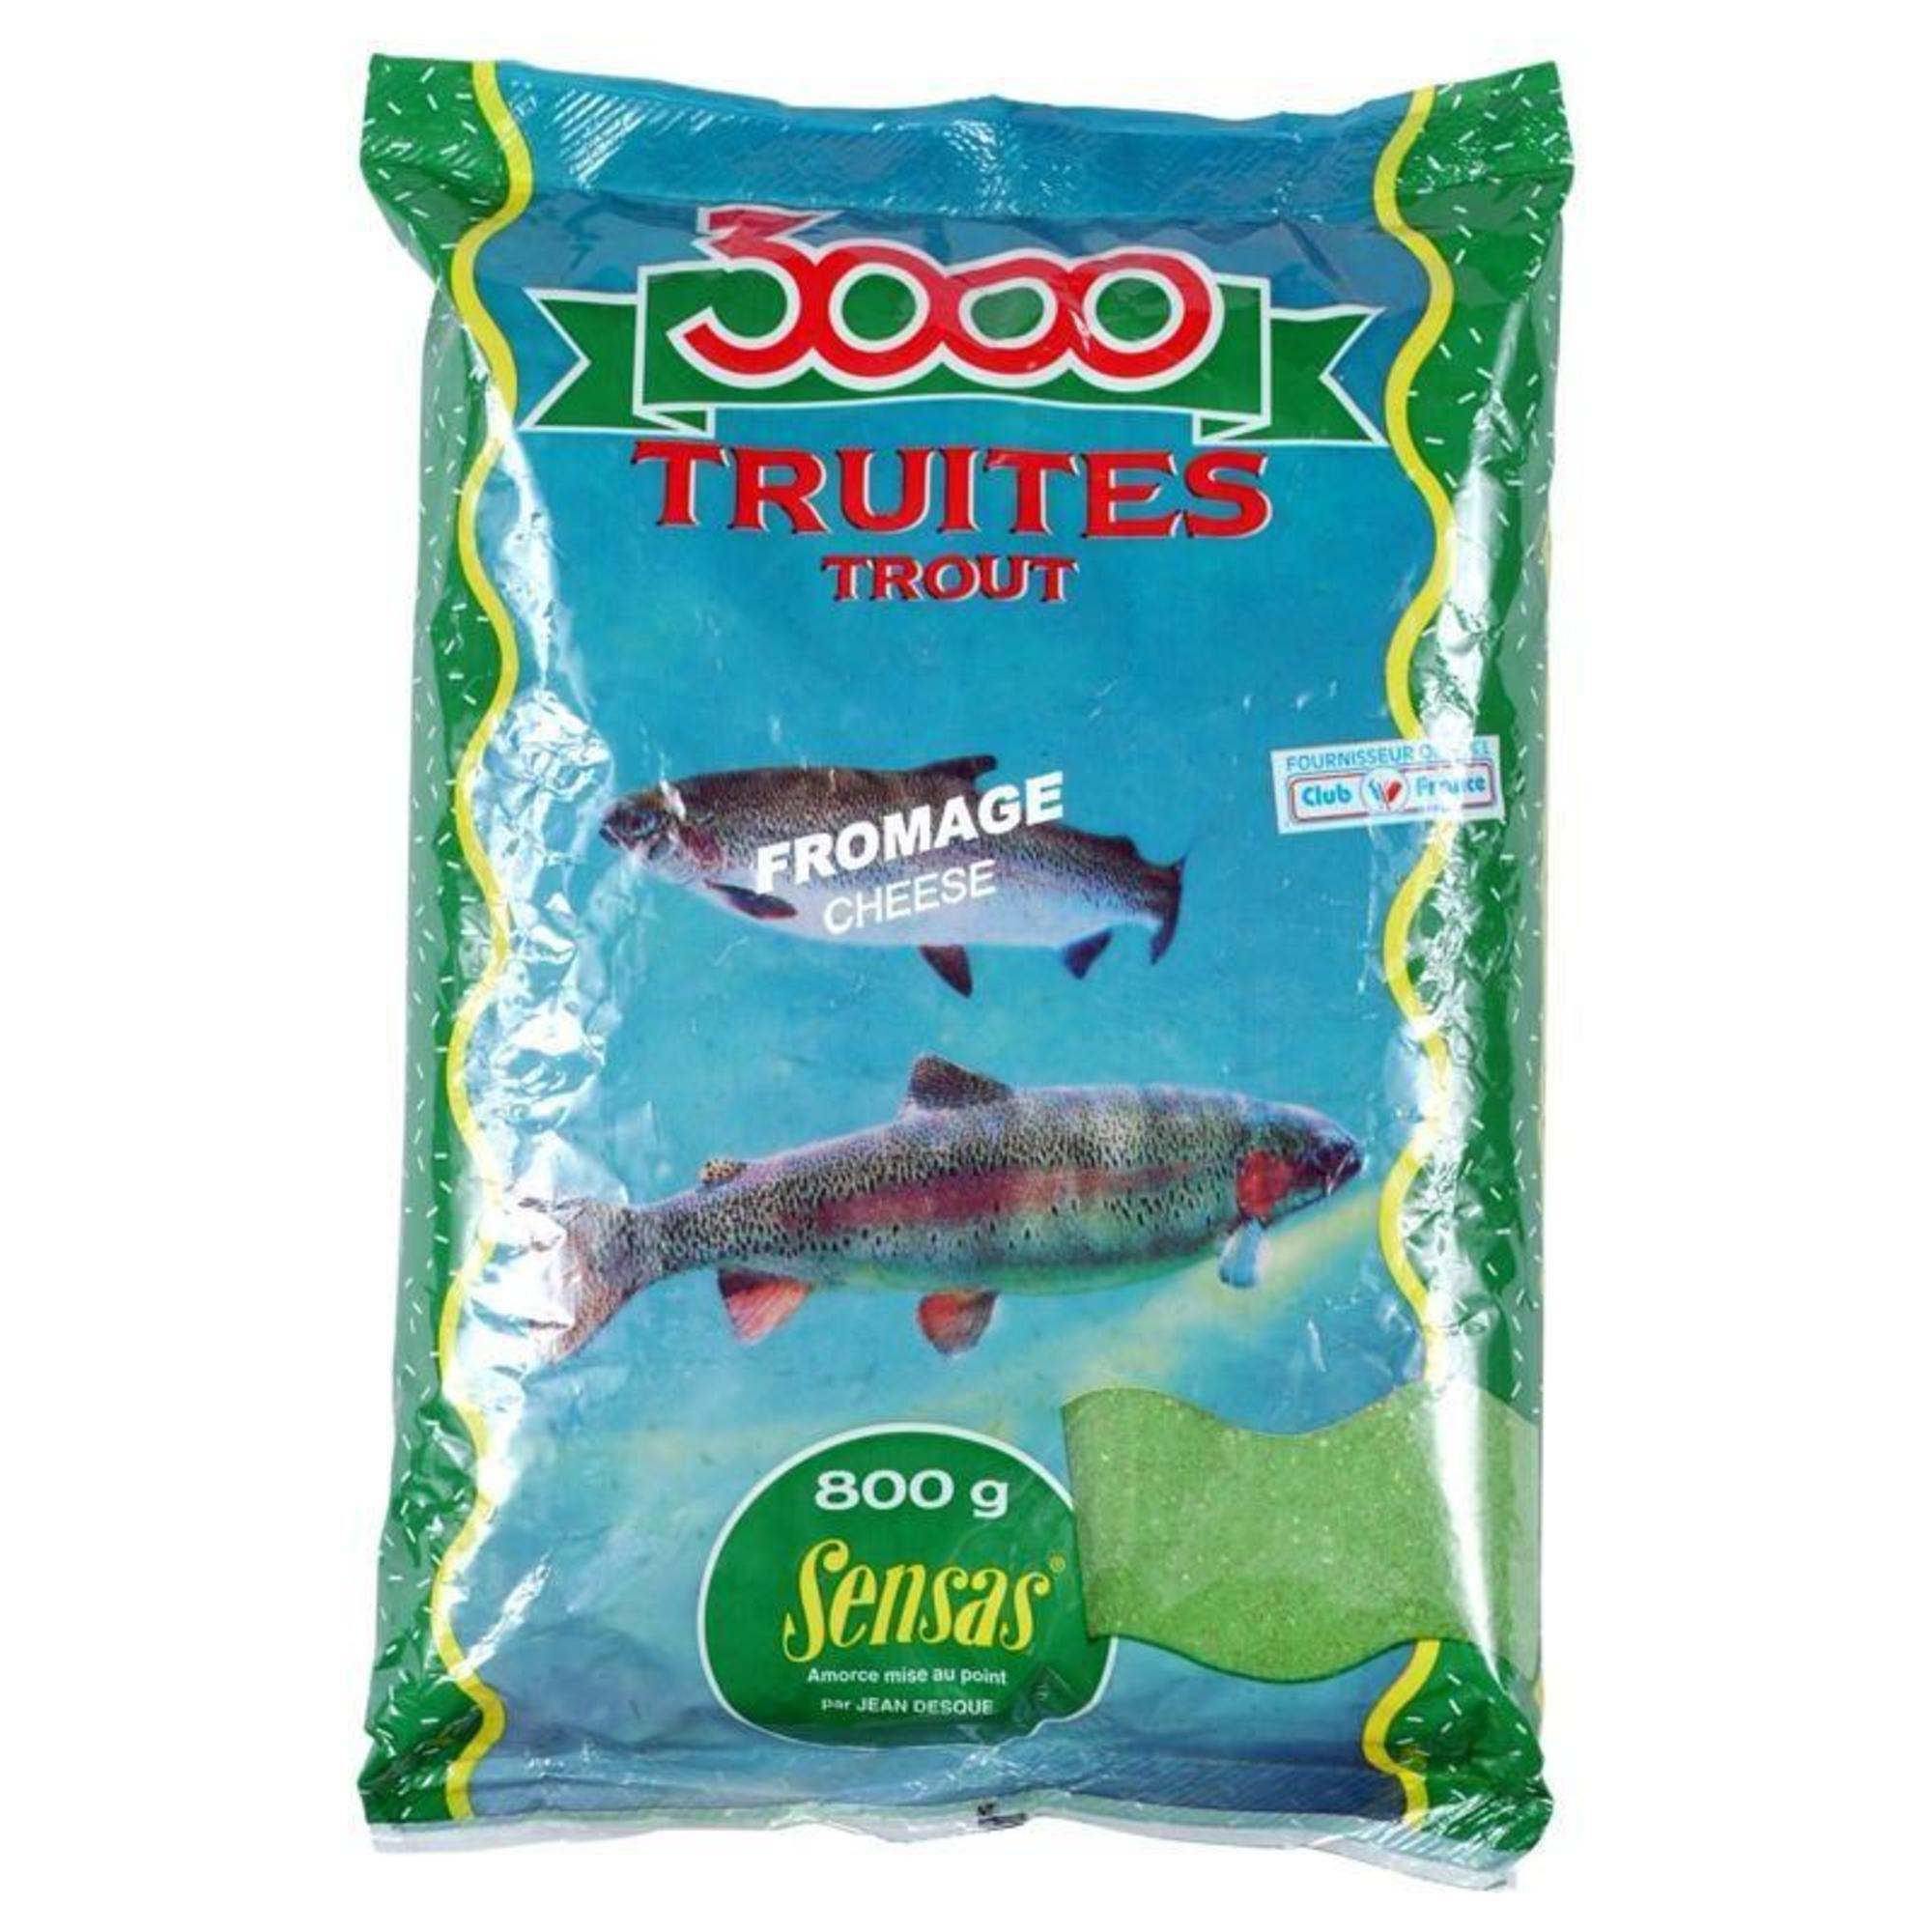 PRIMER 3000 TROUT CHEESE FOR TROUT FLOAT FISHING